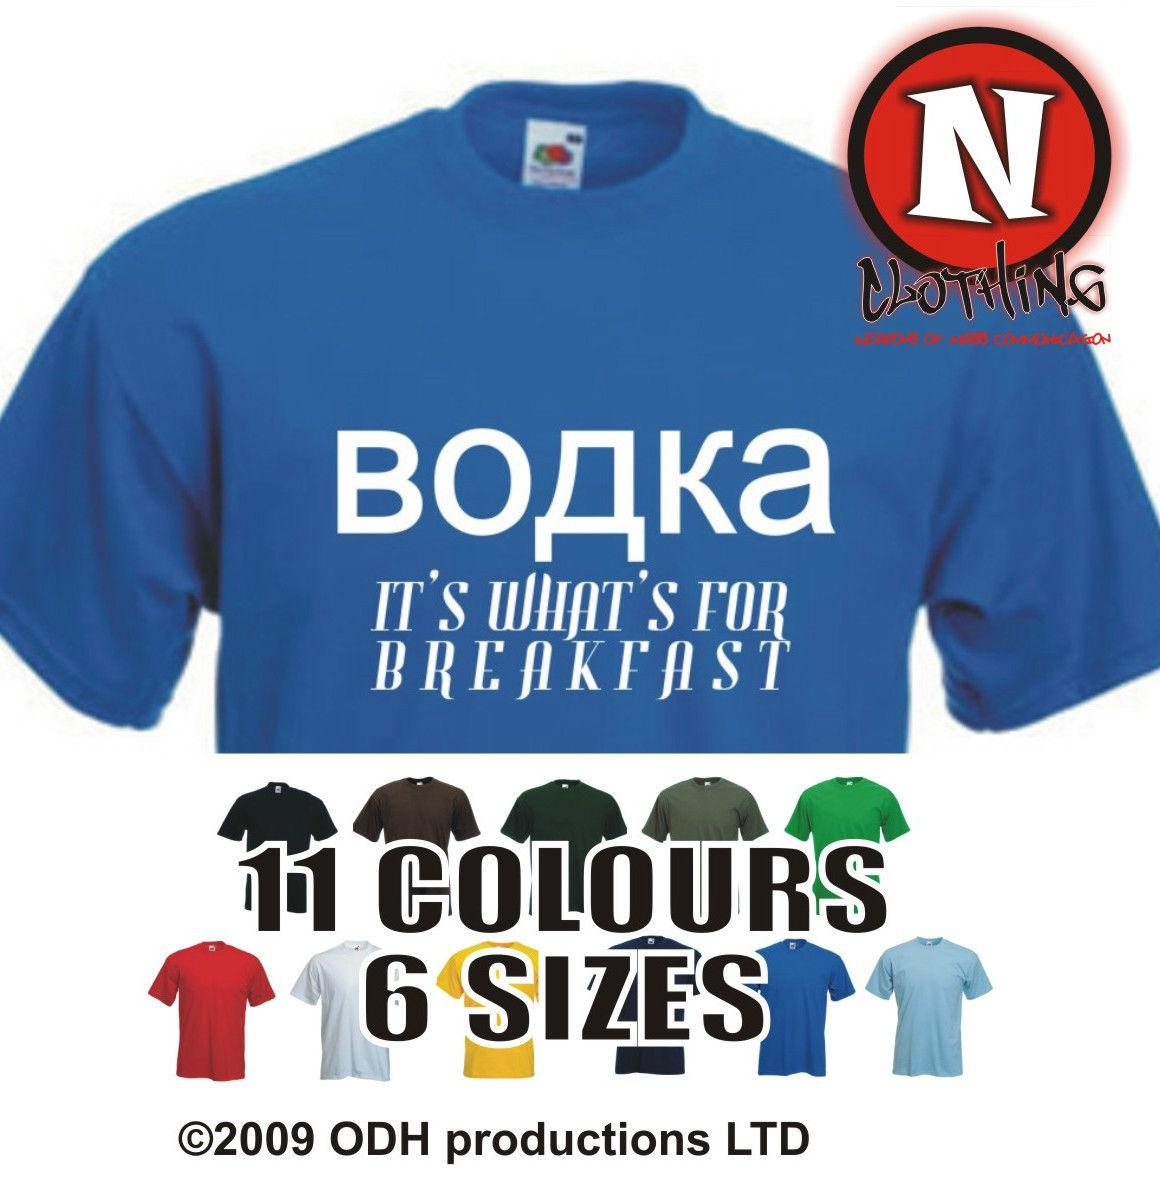 VODKA IT'S WHAT'S FOR COLAZIONE divertente bere festa club party t-shirt Divertente spedizione gratuita Unisex Casual Tshirt top